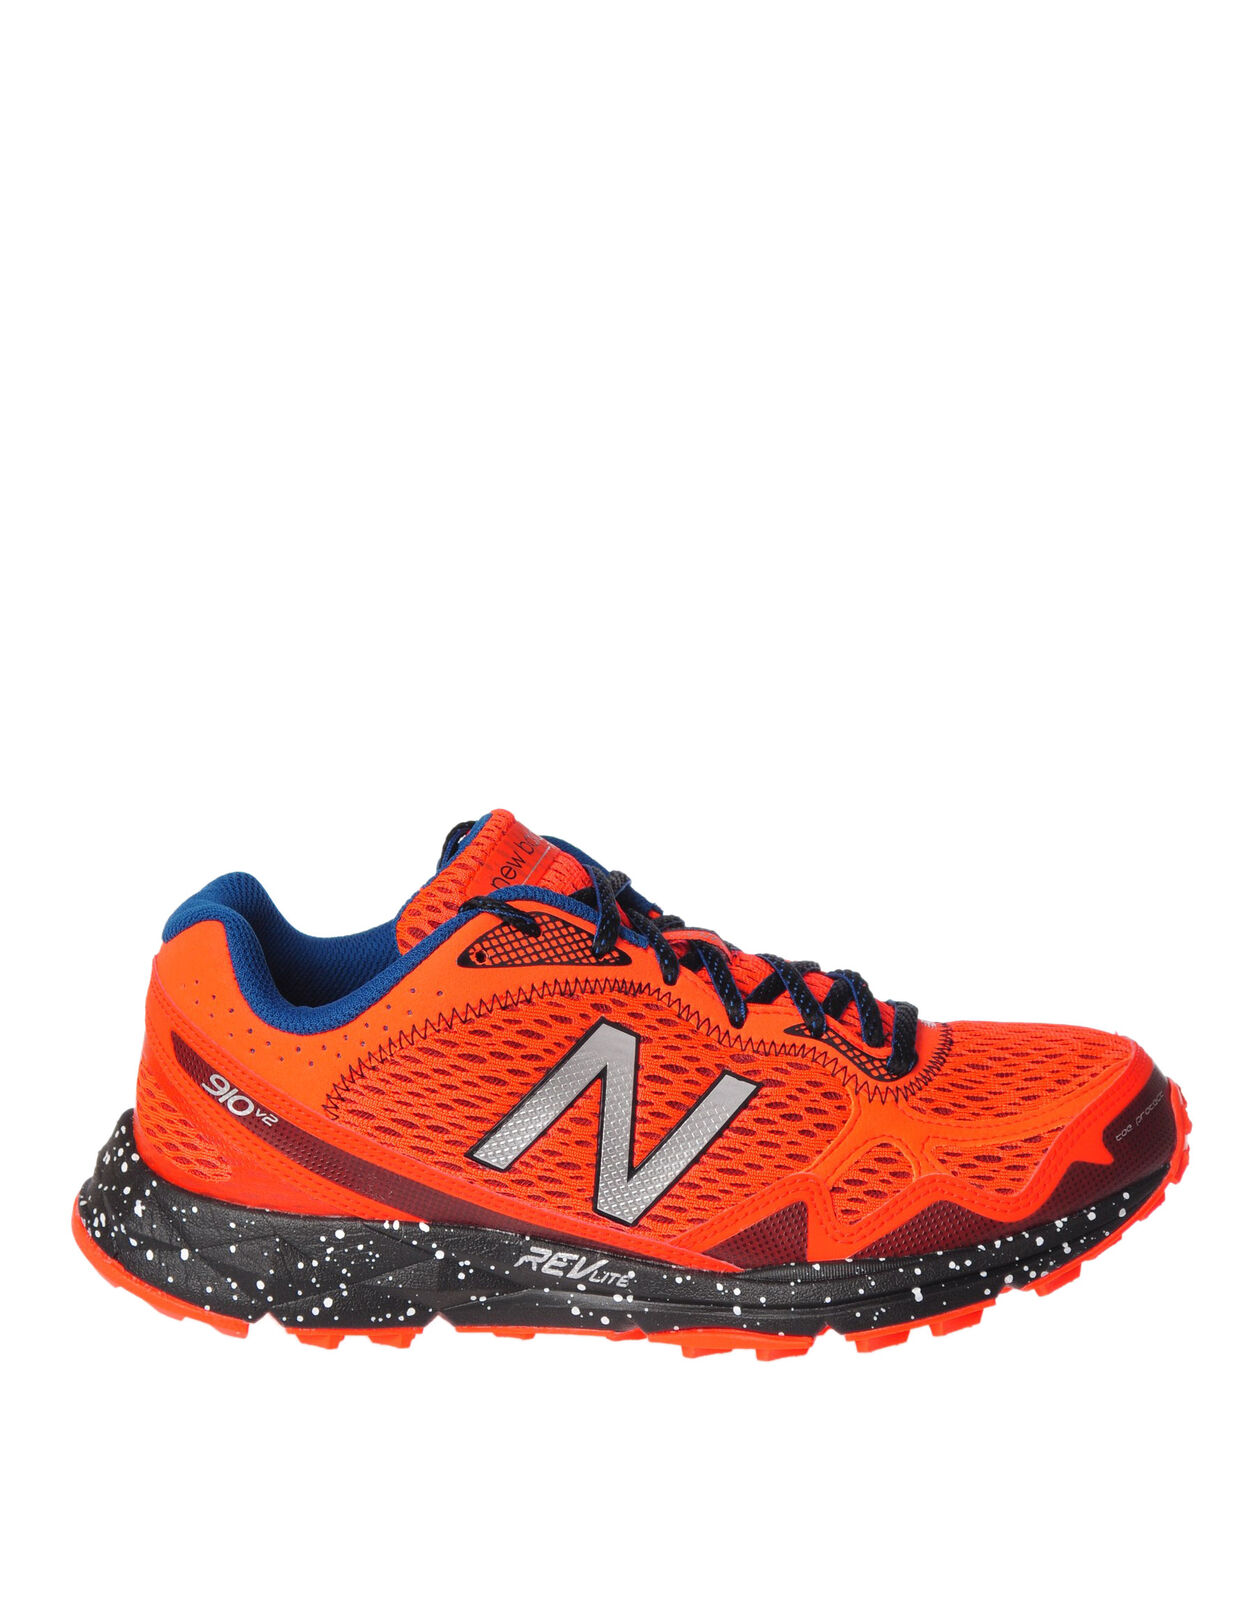 New Balance - shoes-Sneakers low - Man - Red - 454915C184659